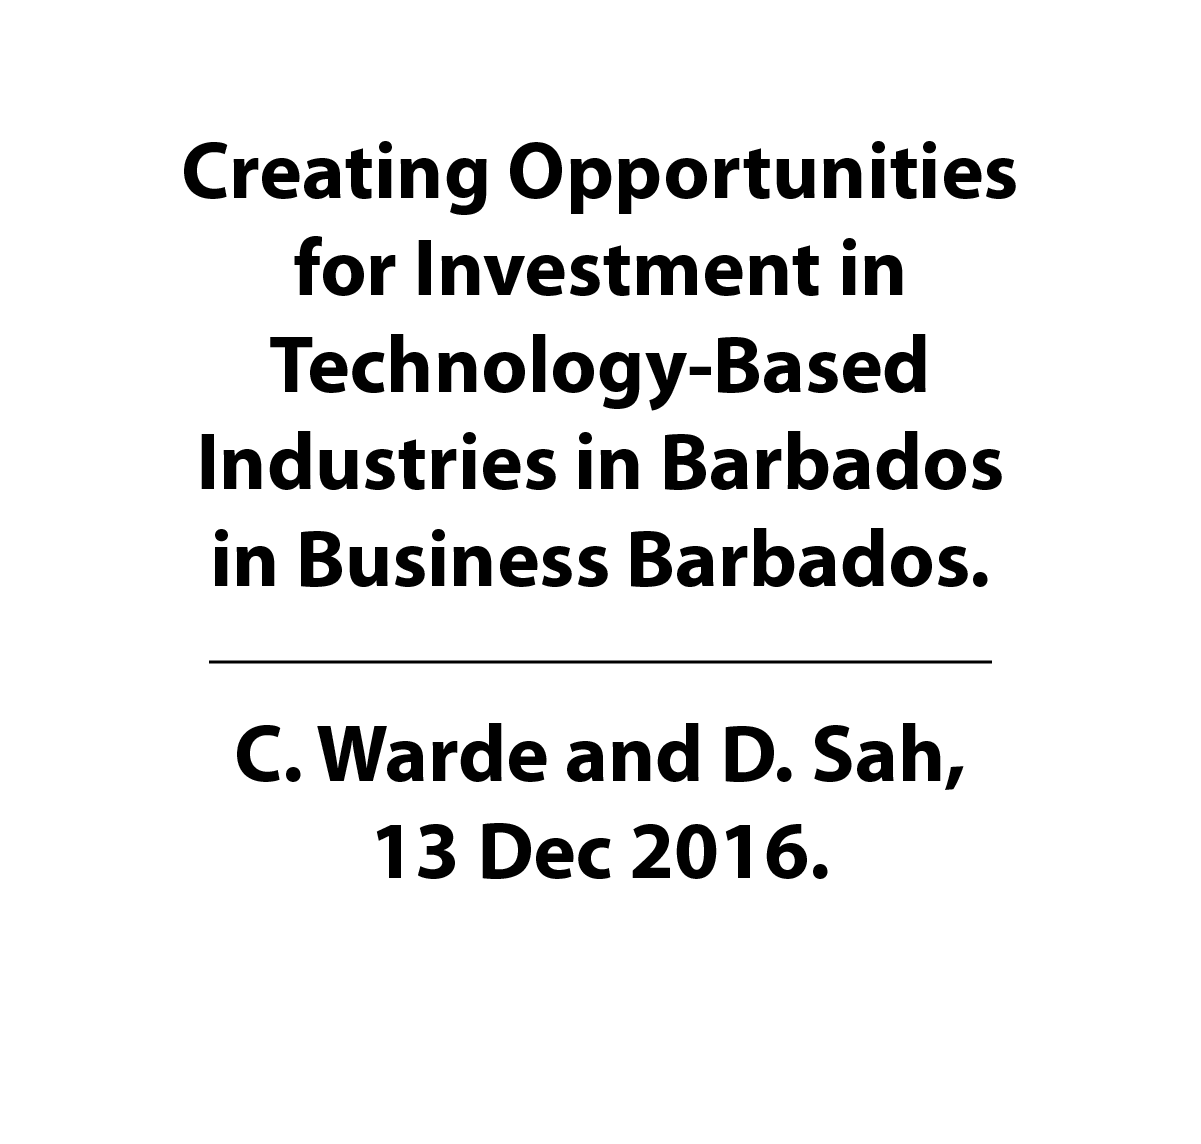 Creating Opportunities for Investment in Technology-Based Industries in Barbados in Business Barbados